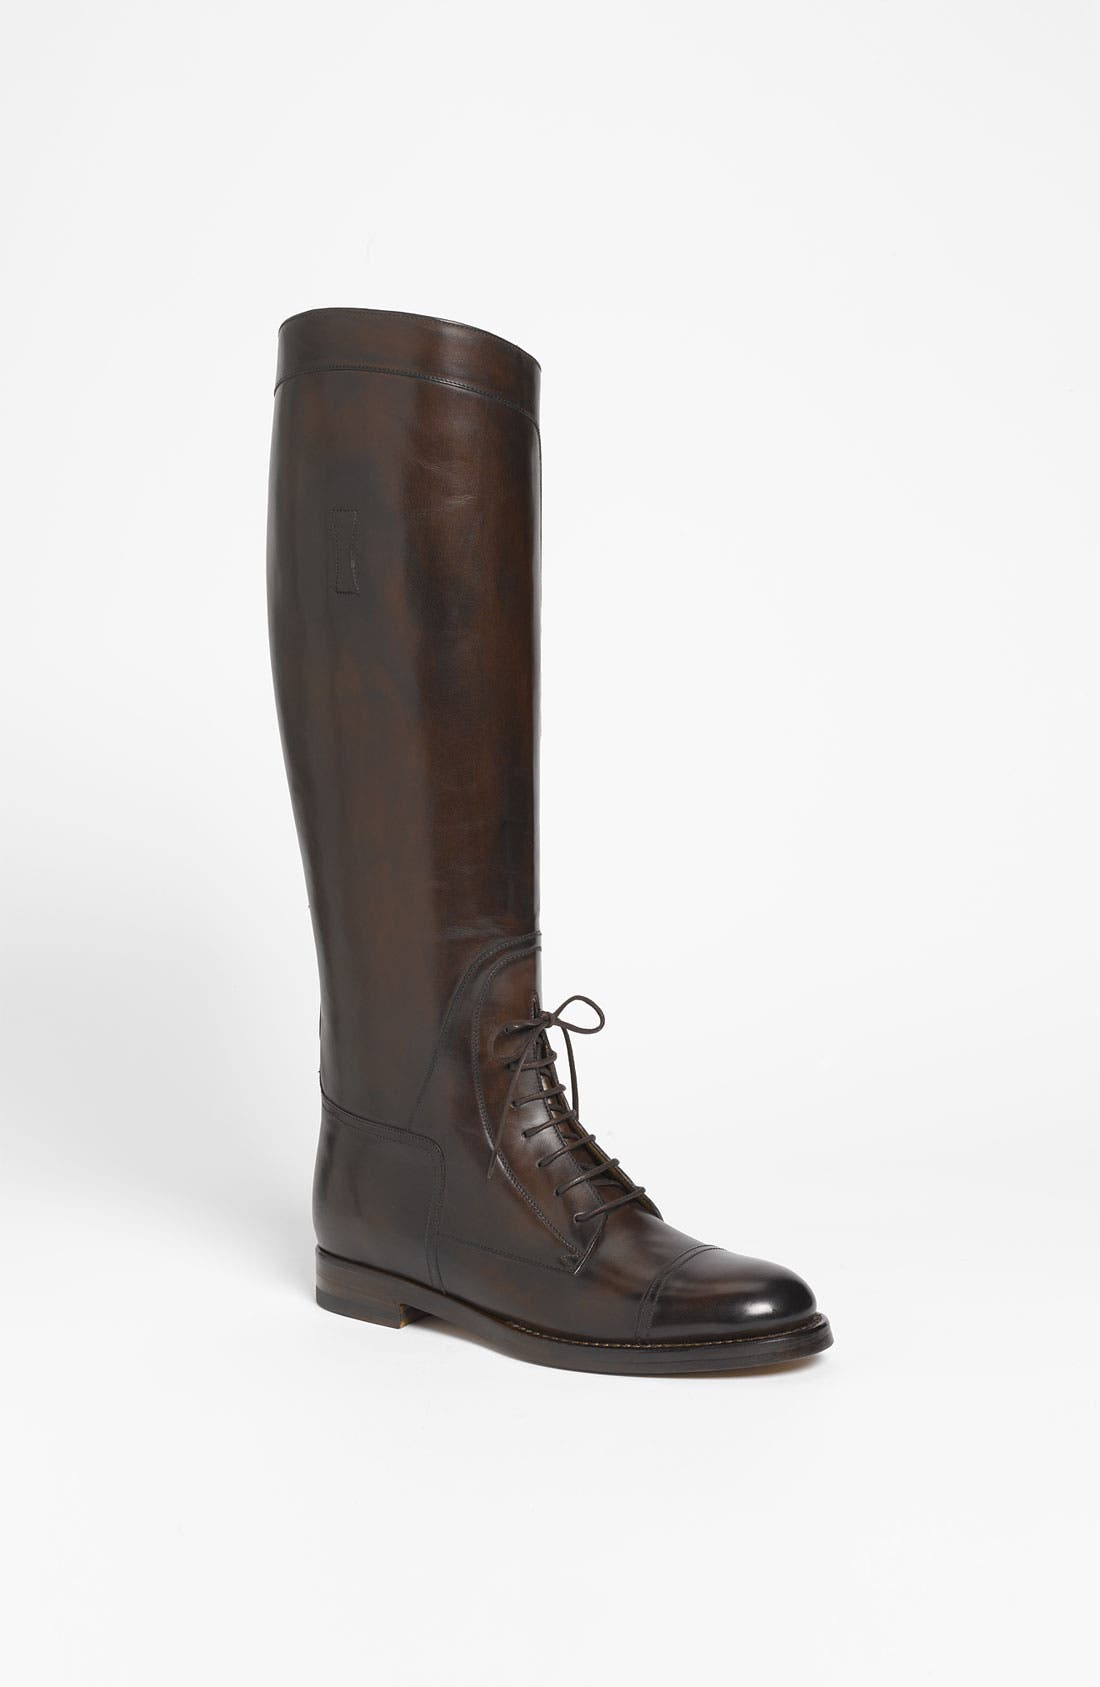 Alternate Image 1 Selected - Gucci 'Boulanger' Boot